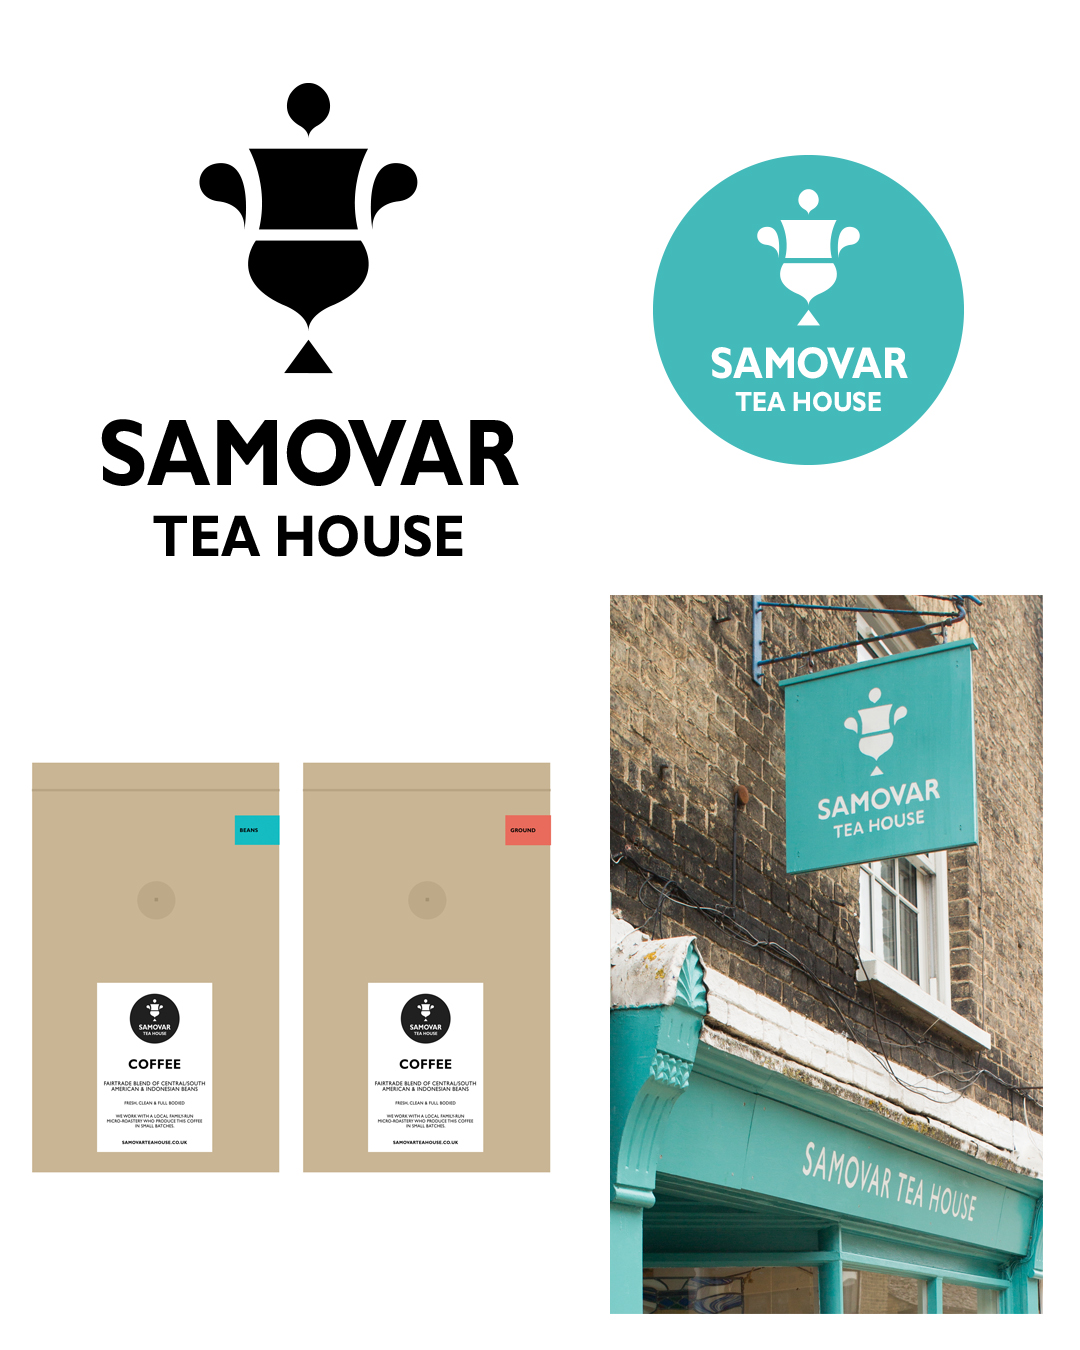 samovar tea house branding